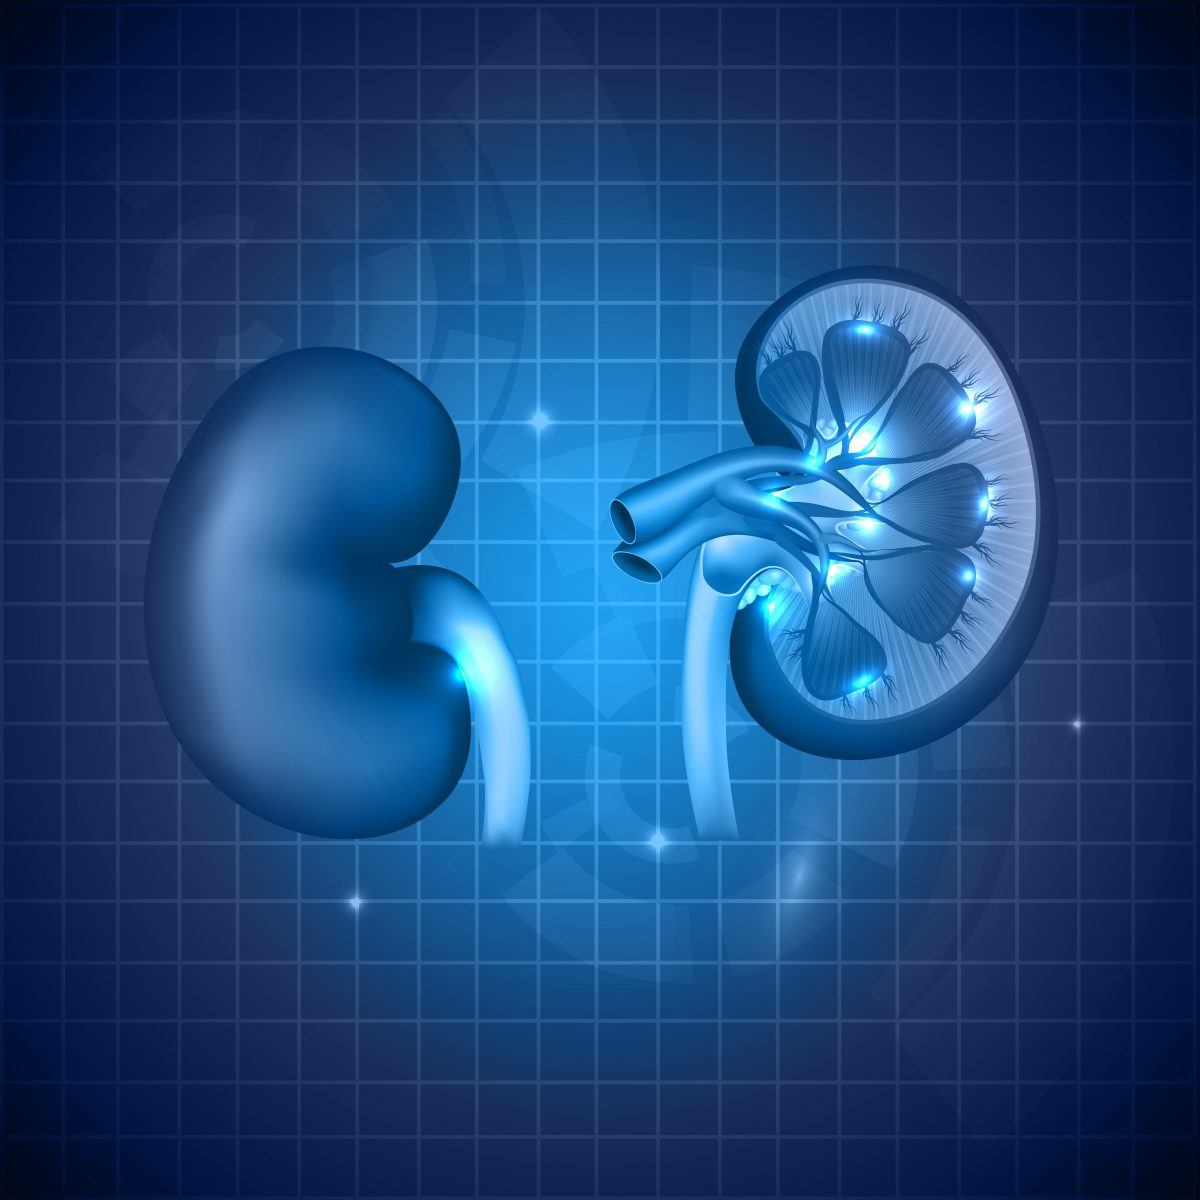 Researchers Review Clinical Trial Design for Lupus Nephritis Therapies